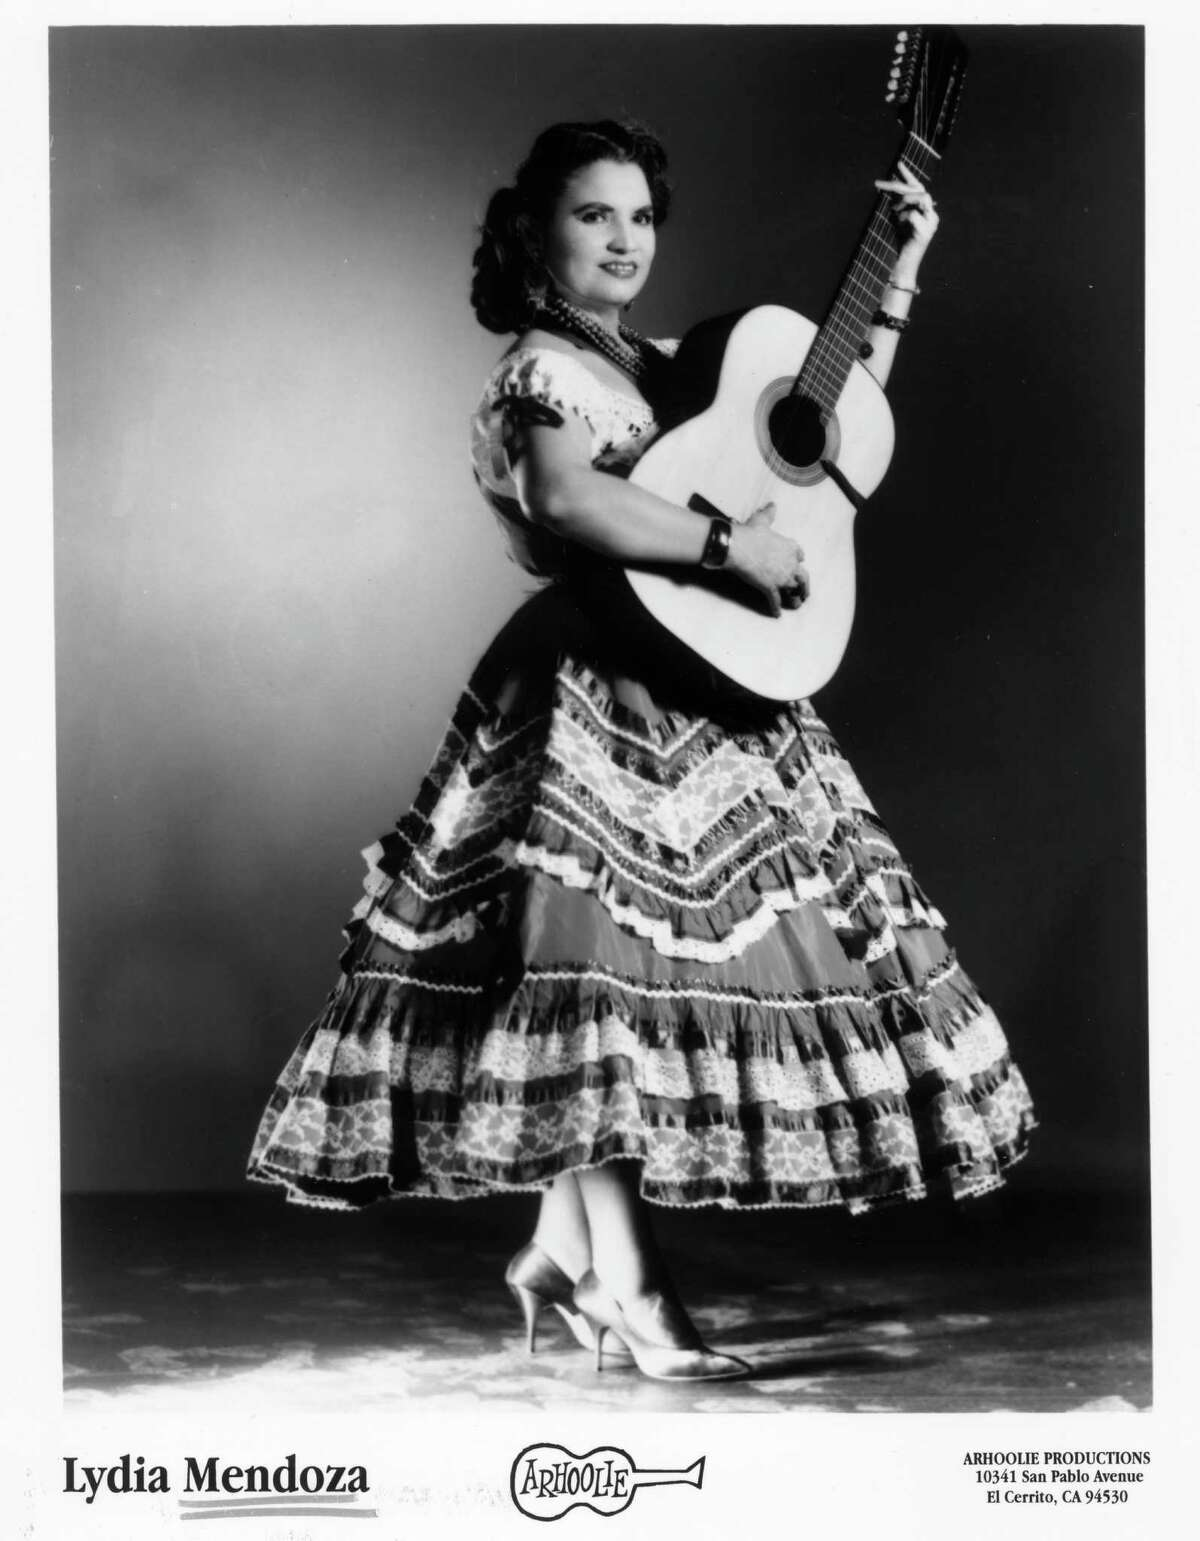 Undated photo of Lydia Mendoza, a Houston native known as